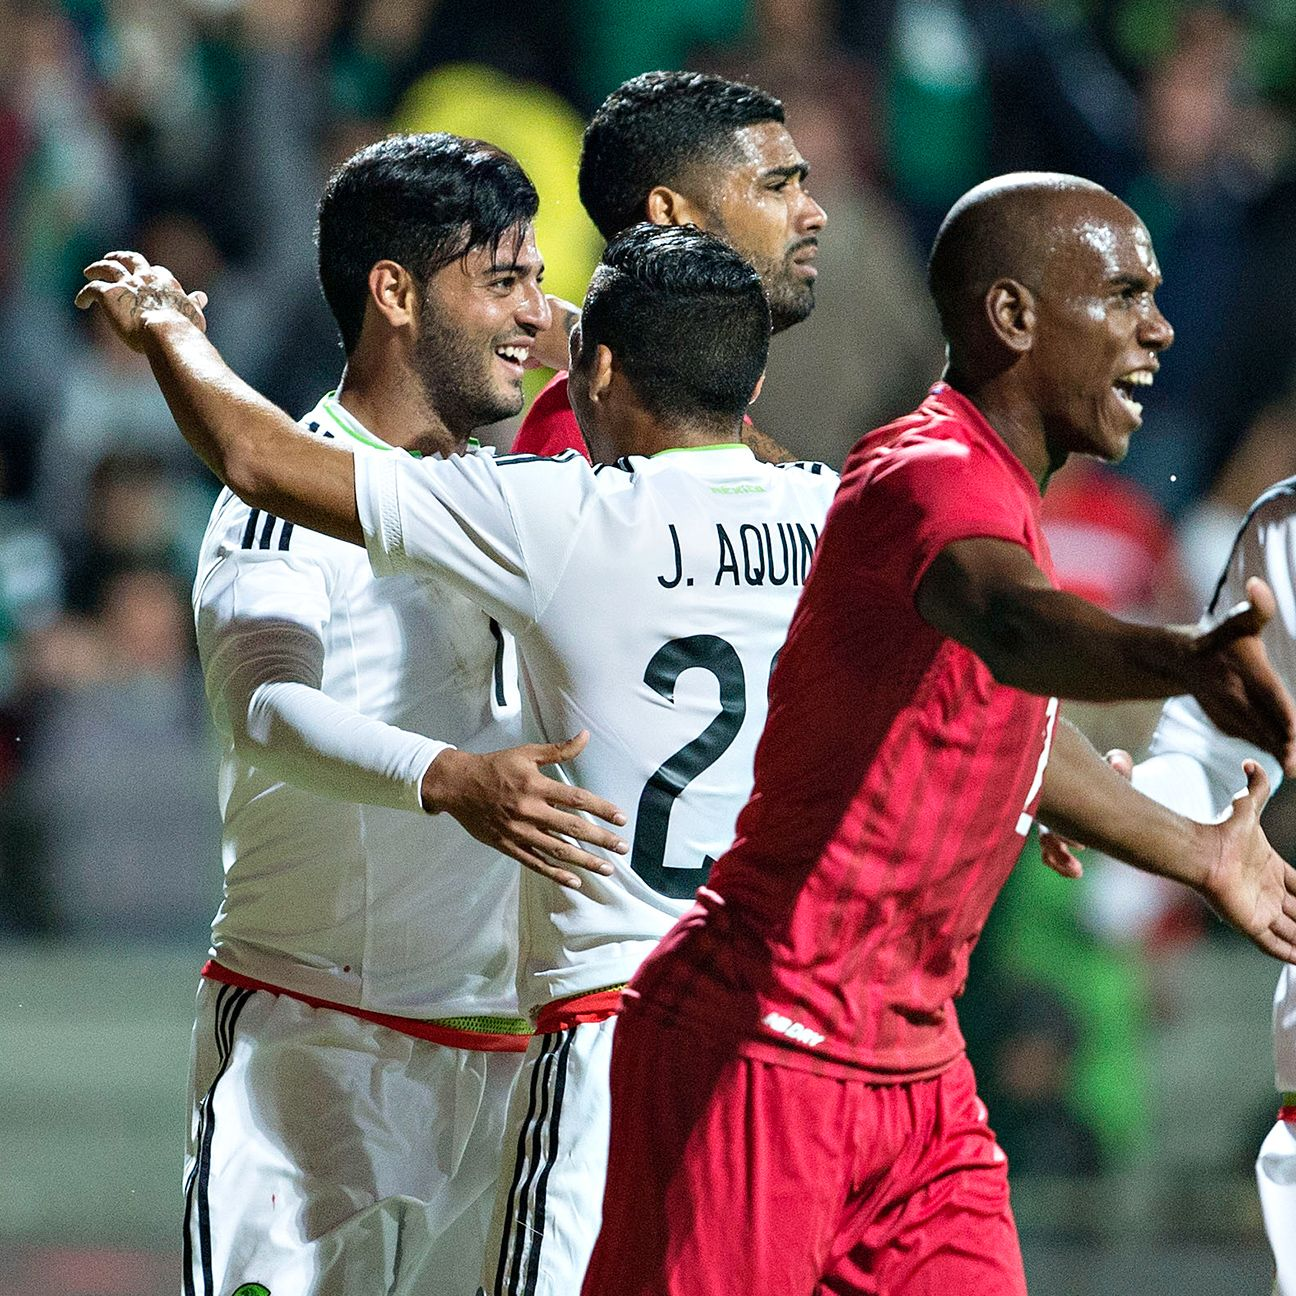 After not appearing in Saturday's win against the United States, Carlos Vela scored the lone goal in Mexico's victory.